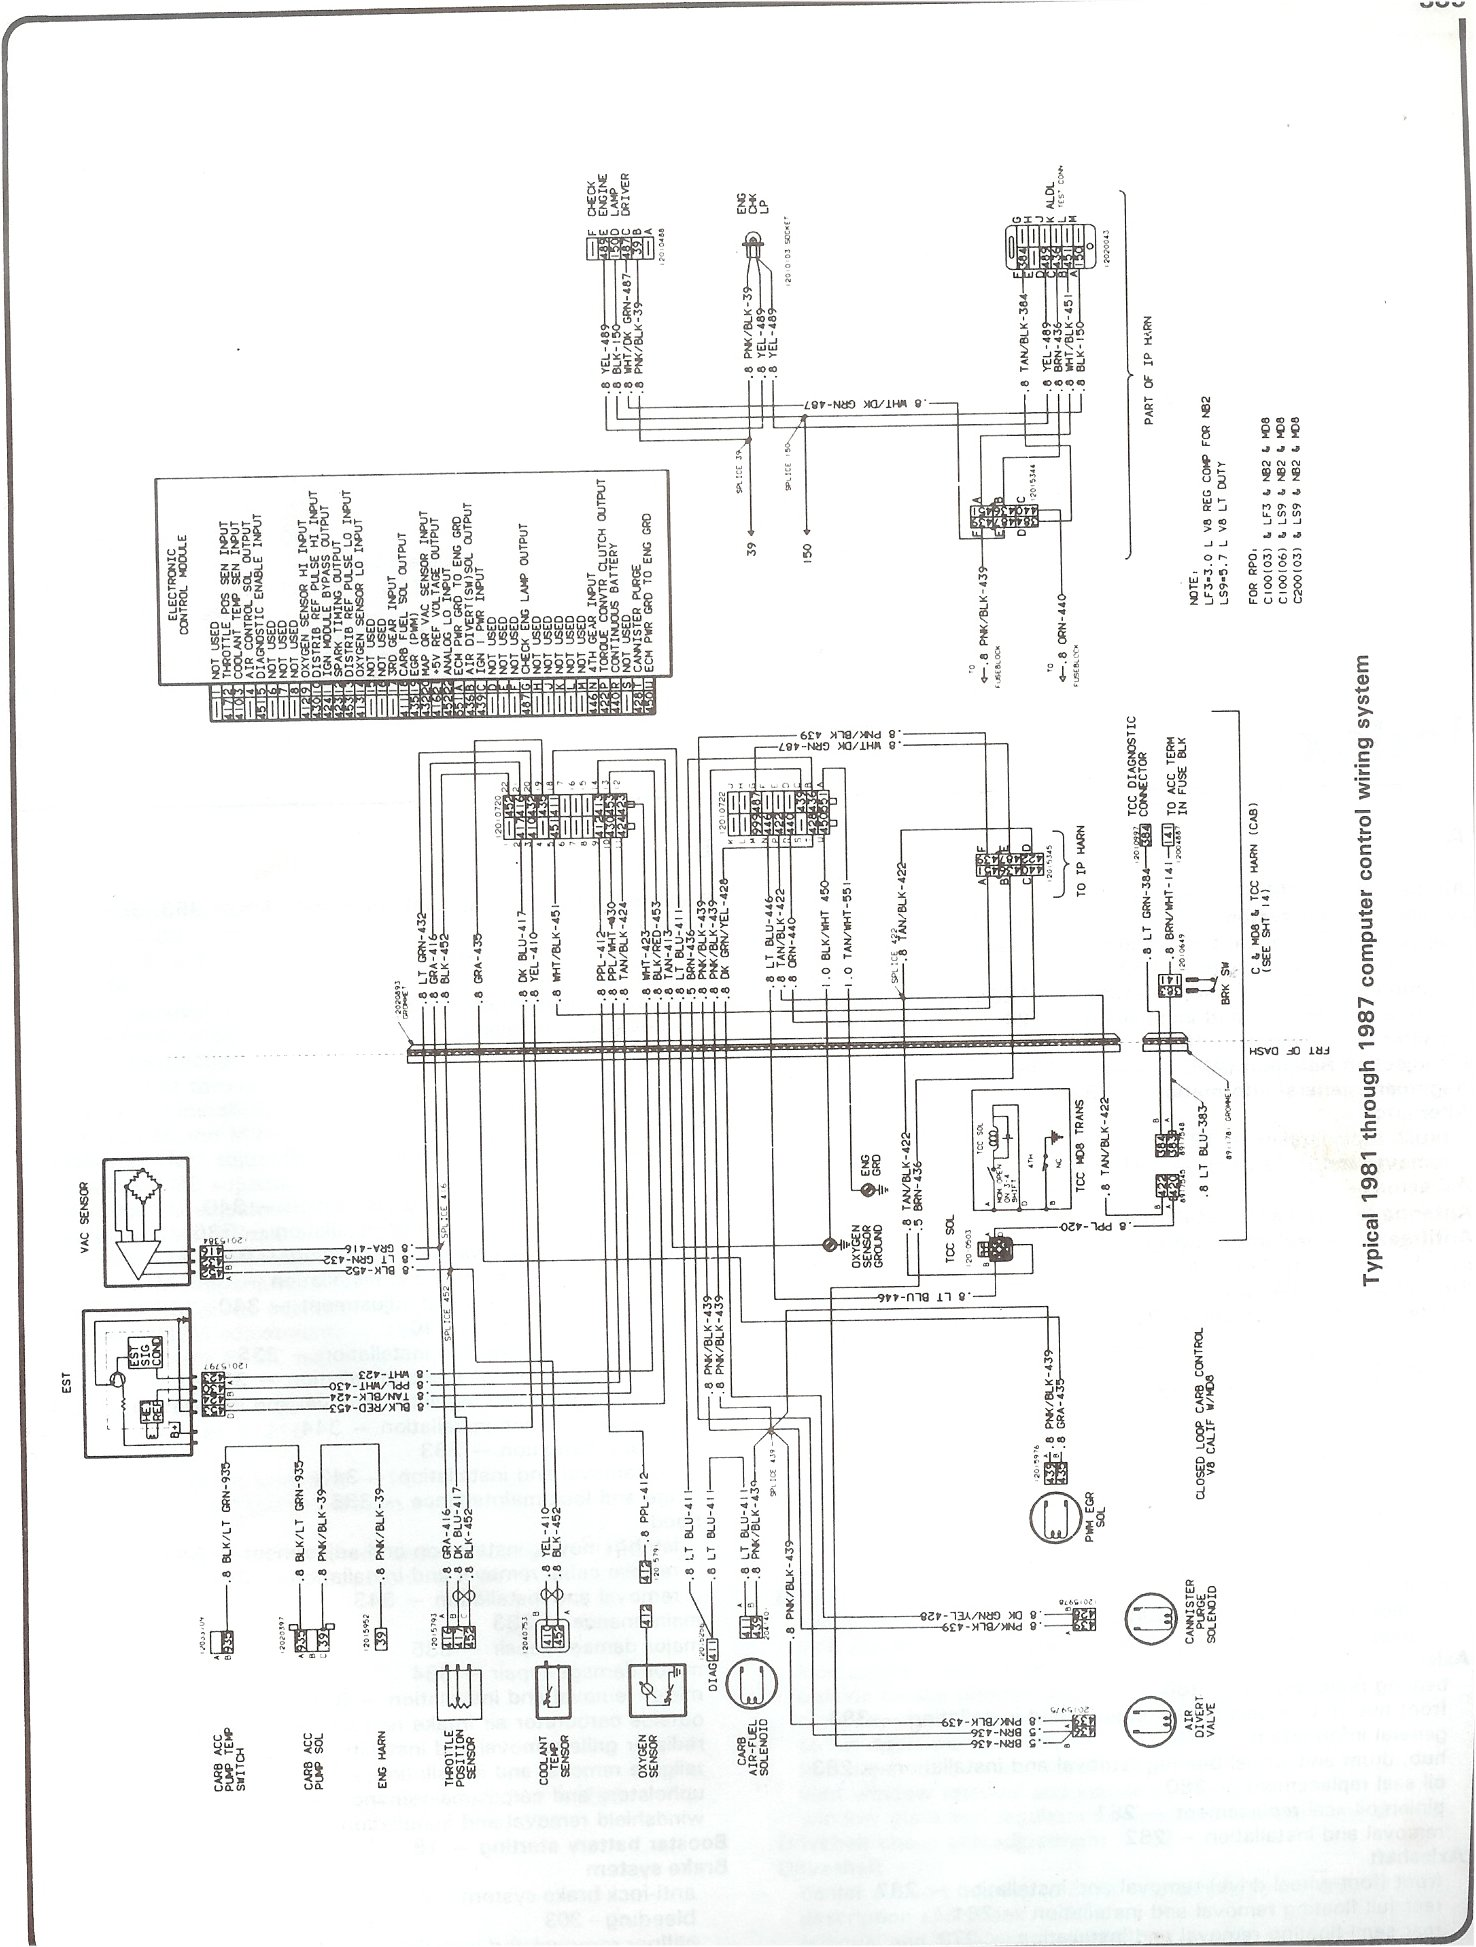 81 87_computer_control_wiring complete 73 87 wiring diagrams 87 chevy truck wiring diagram at creativeand.co